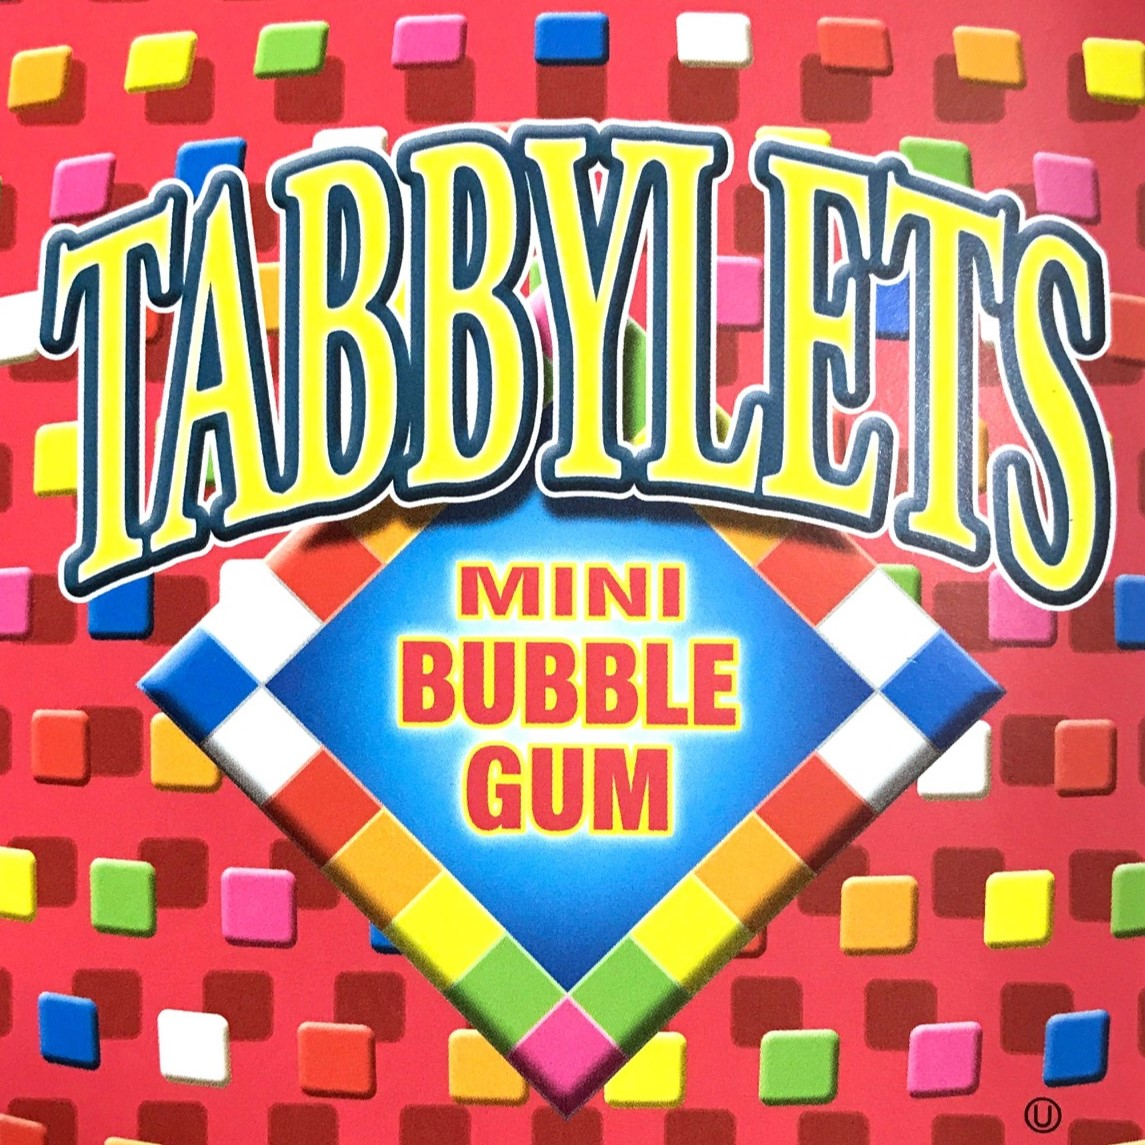 Oak Leaf Tabbylets Mini Chicle Chewing Gum (22 000 ct) 29.26 lbs